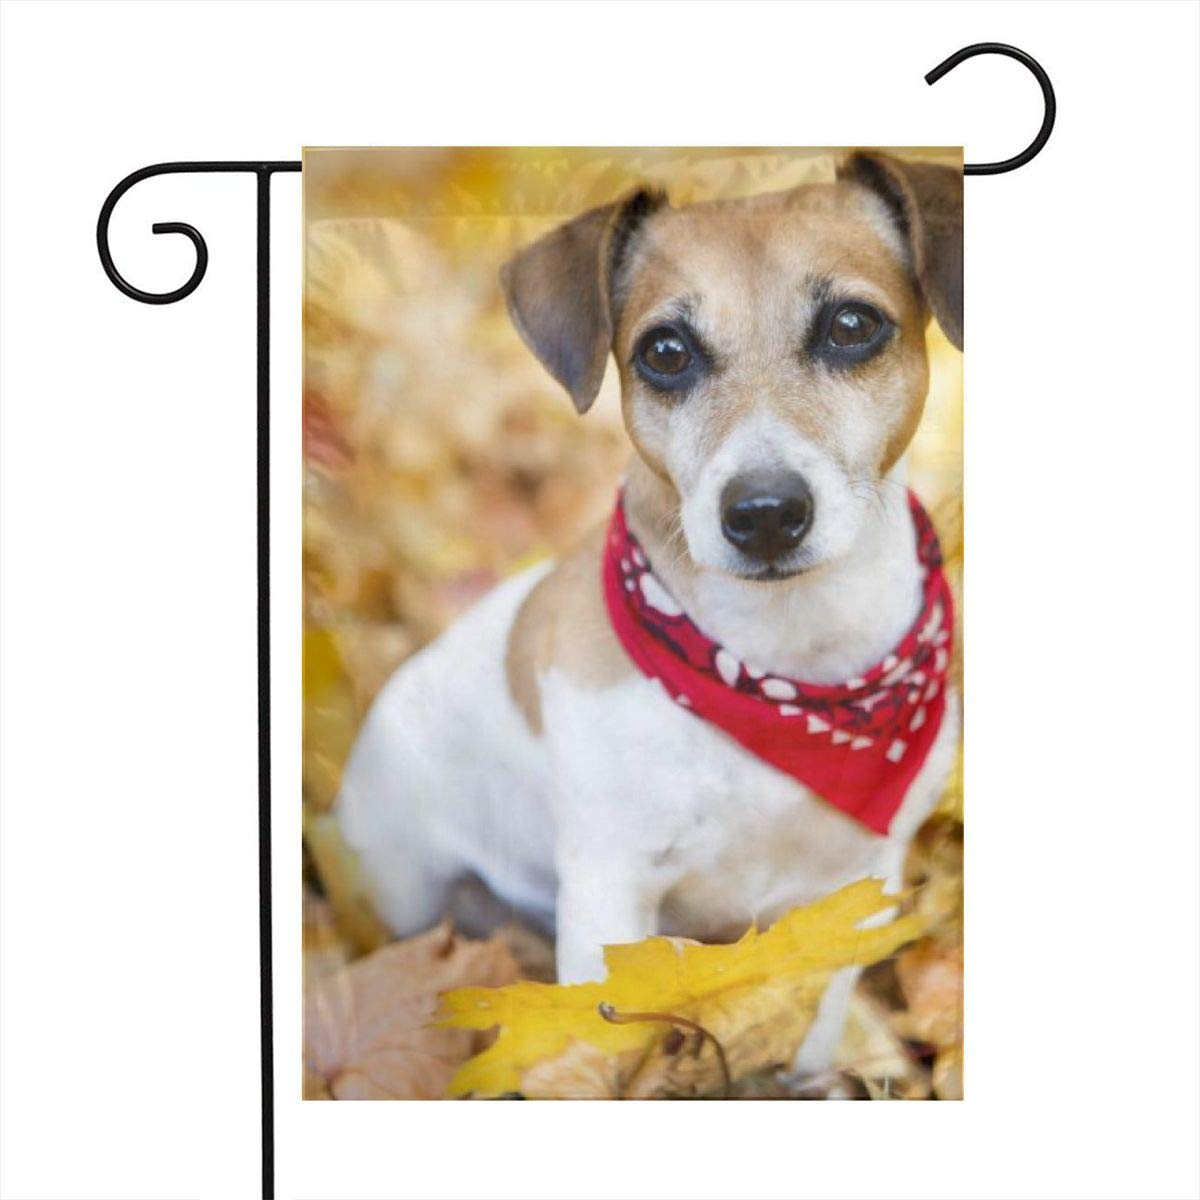 Jack Russell Terrier Puppy Dog Garden Flags House Indoor & Outdoor Welcome Decorations,Waterproof Polyester Yard Decorative for Game Family Party Banner